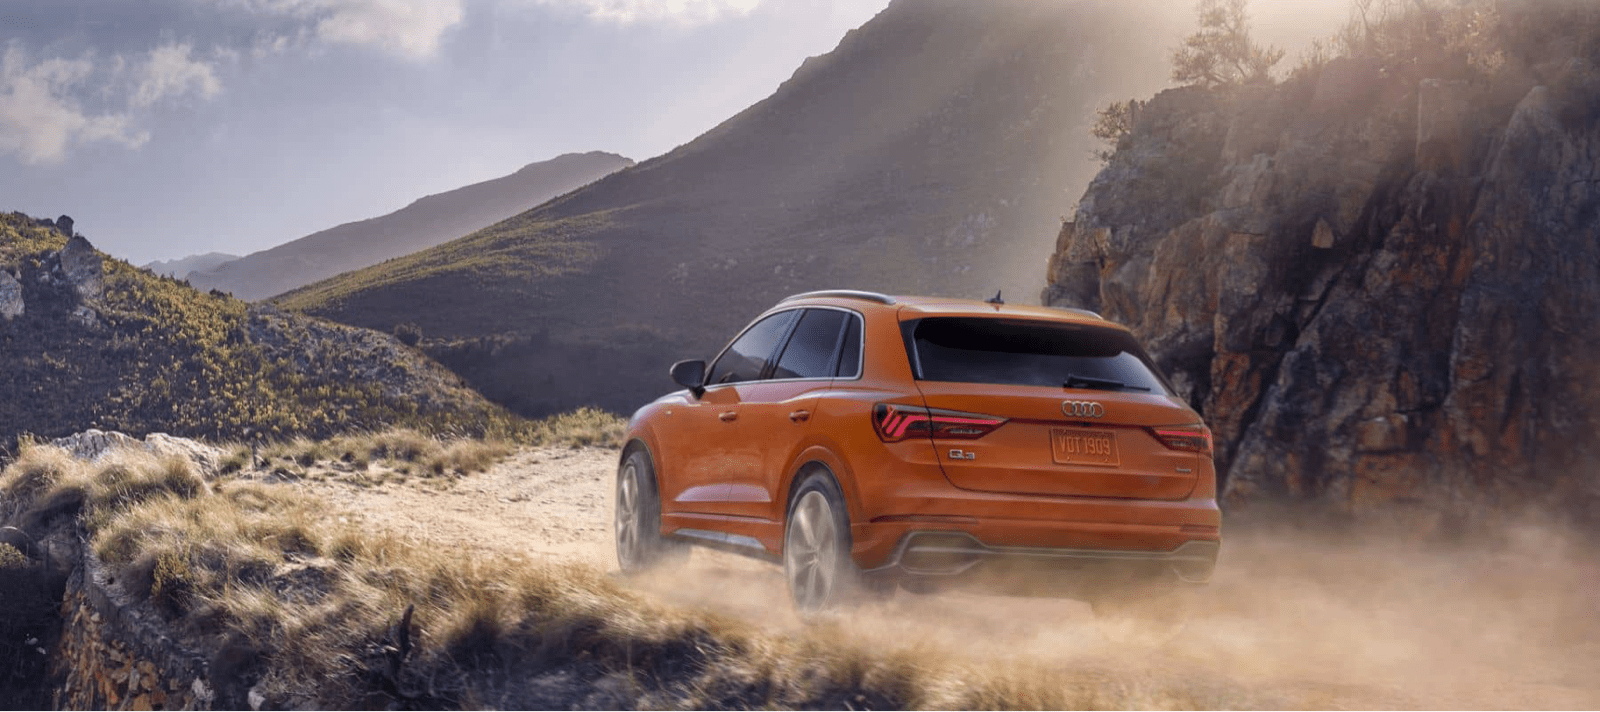 Audi Q3 stirring up dust on dirt road with mountains in distance